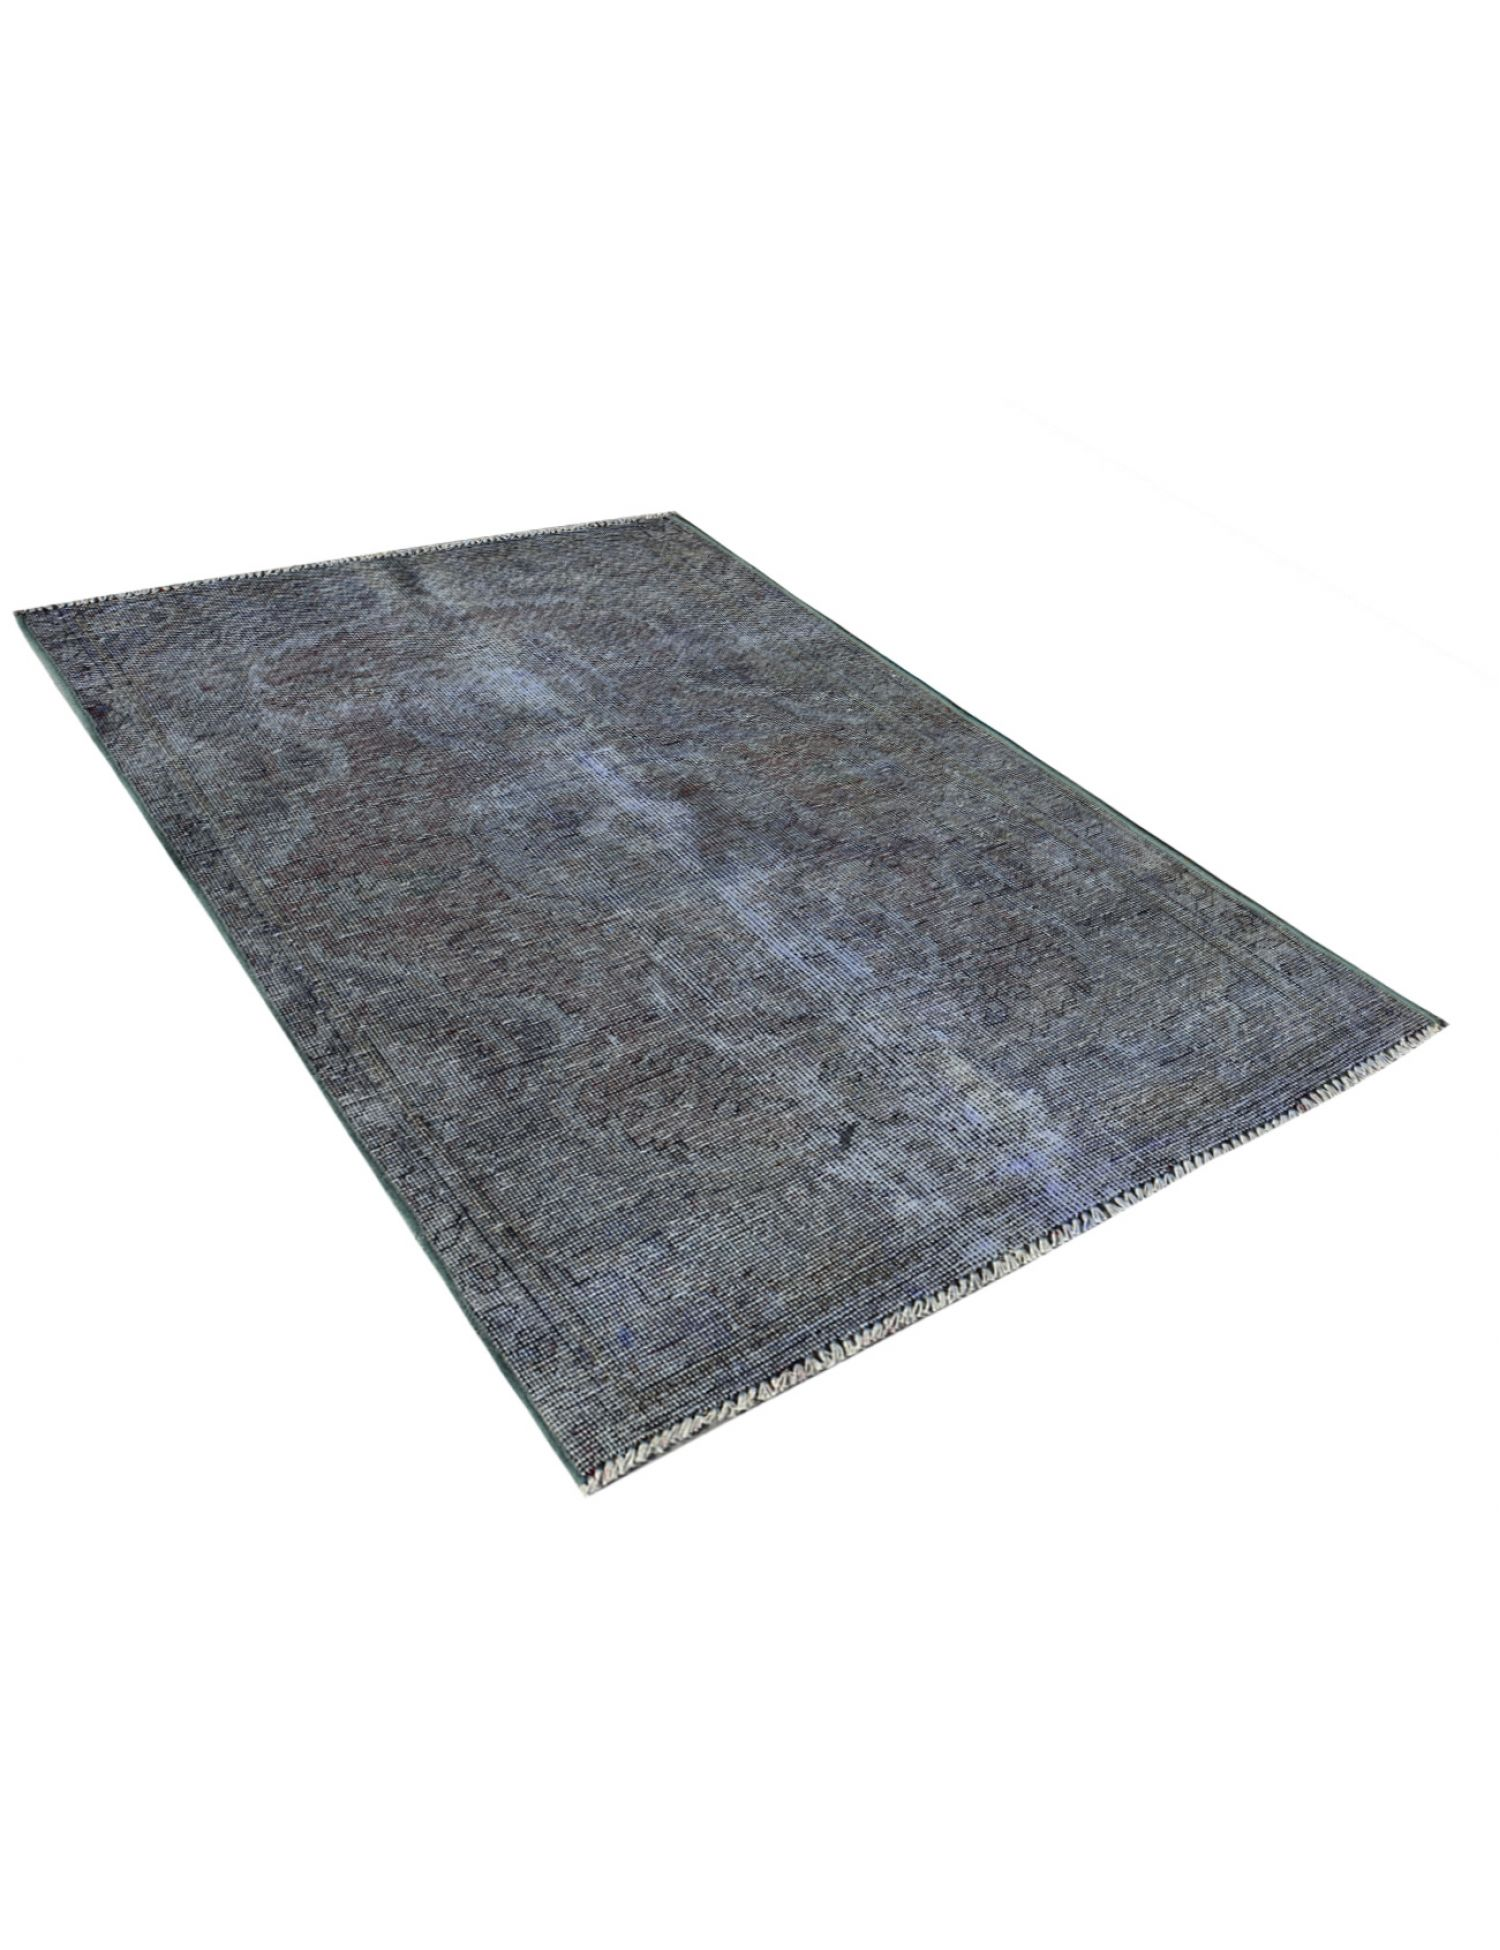 Vintage Carpet  grey <br/>135 x 90 cm